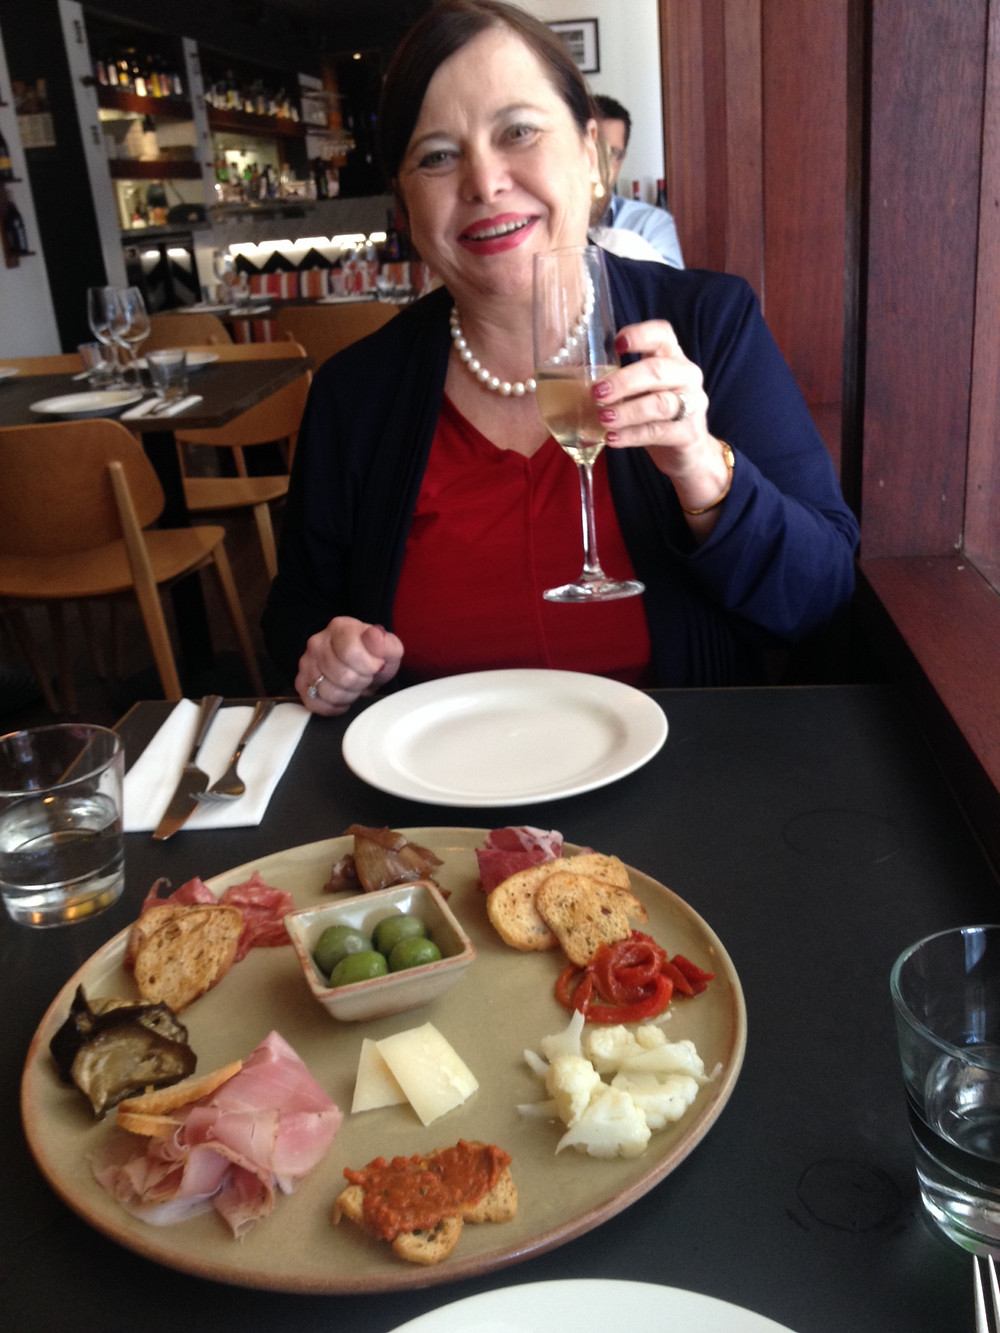 My beautiful Mum, Prosecco and the Antipasto Platter for 2 at Locanda Osteria